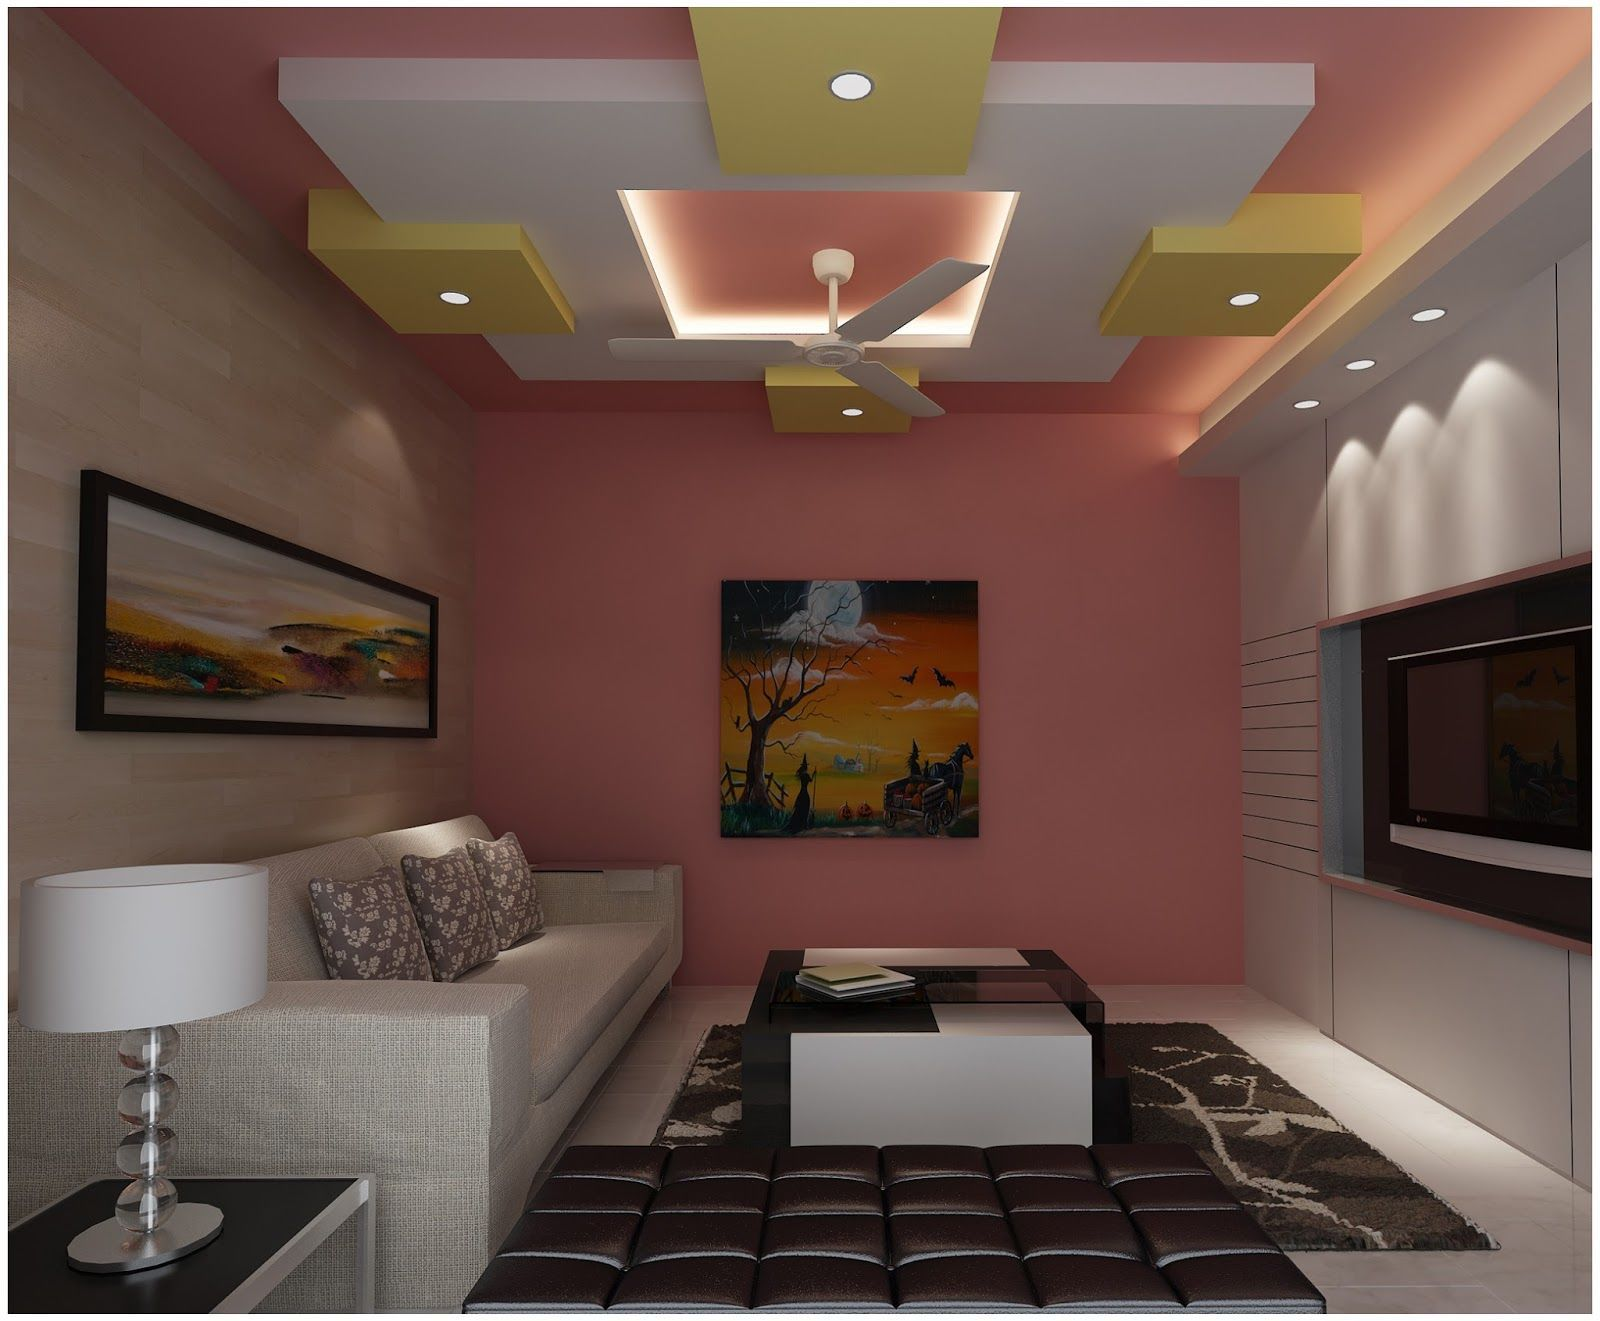 df9762e2057961388896eb5ad9f7d0d4 - 17+ Latest Modern Living Room Simple Small House Ceiling Design Gif